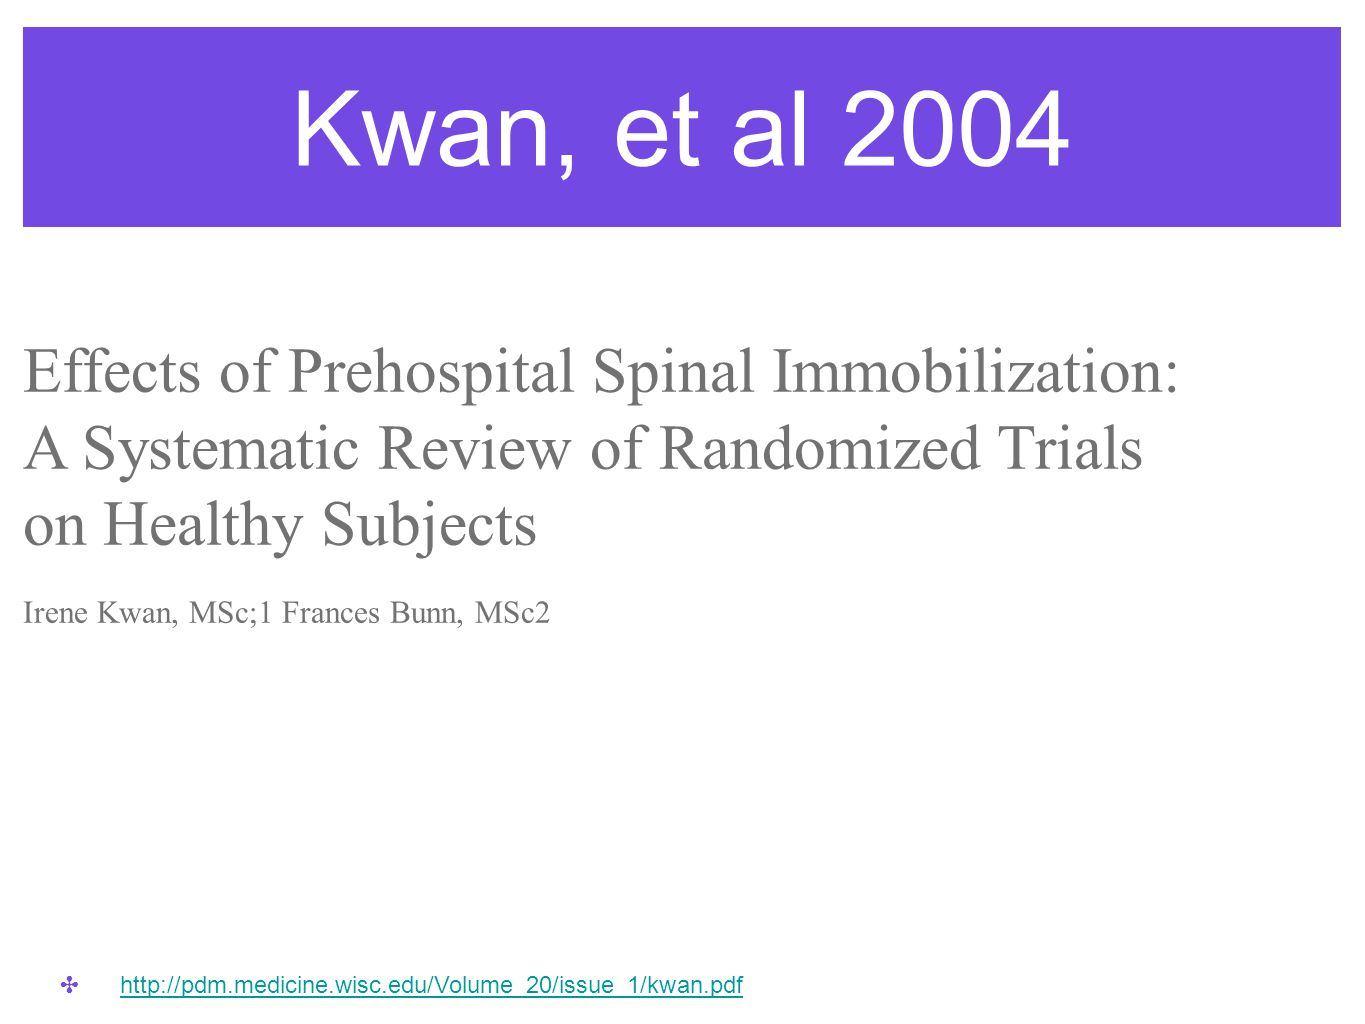 Kwan, et al 2004 Effects of Prehospital Spinal Immobilization: